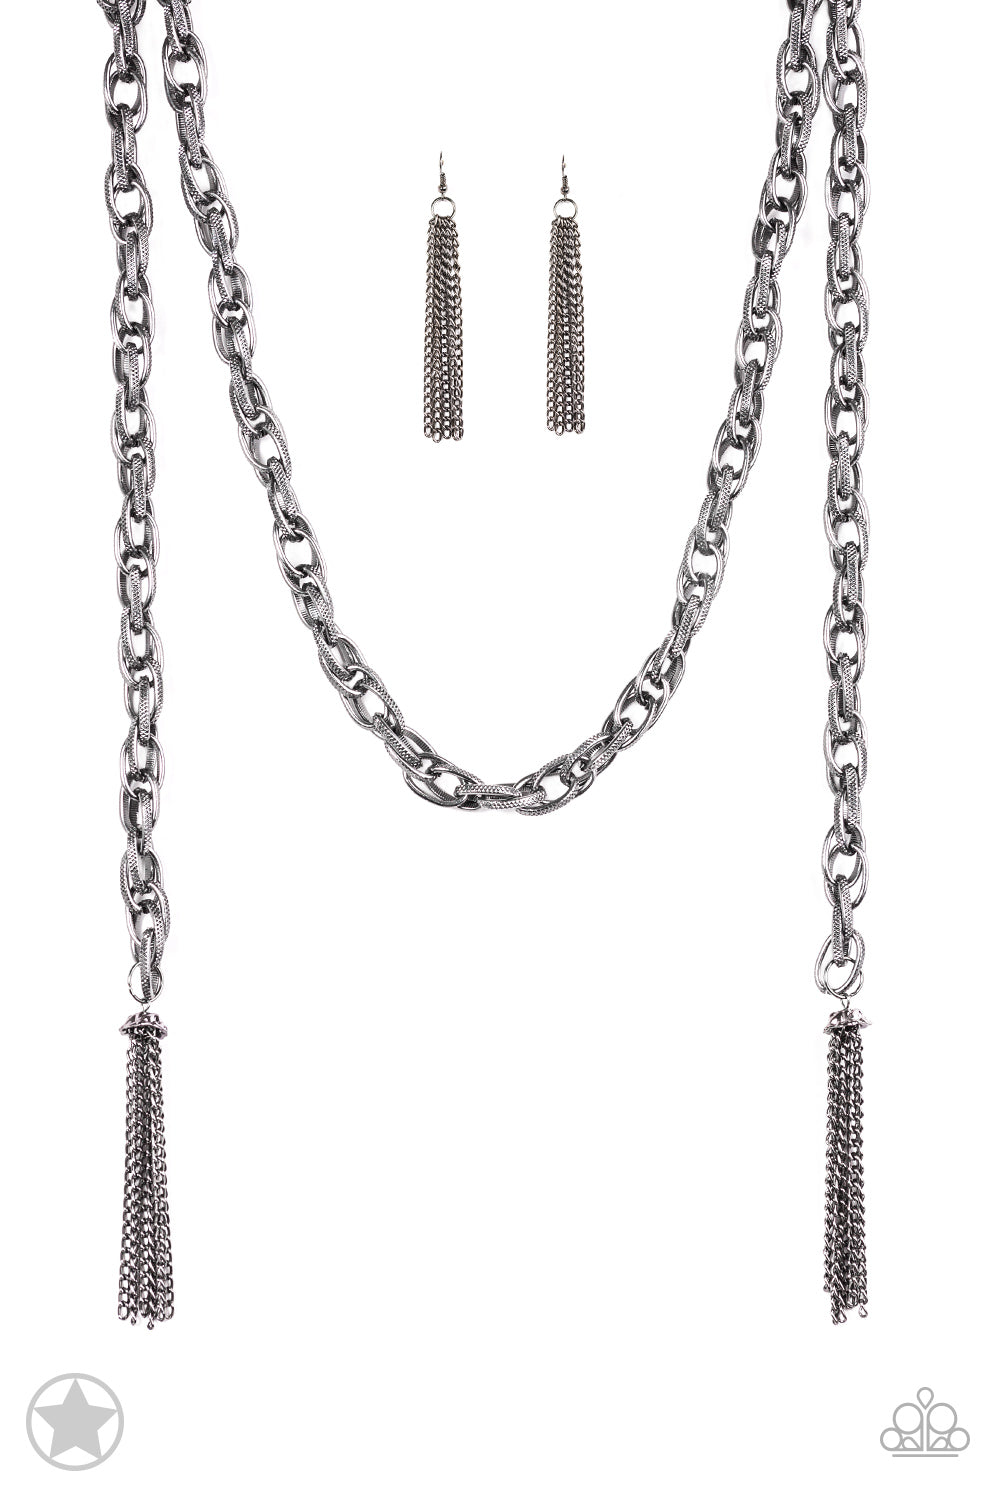 Paparazzi Accessories - Scarfed for Attention - Gunmetal Necklace Set - JMJ Jewelry Collection